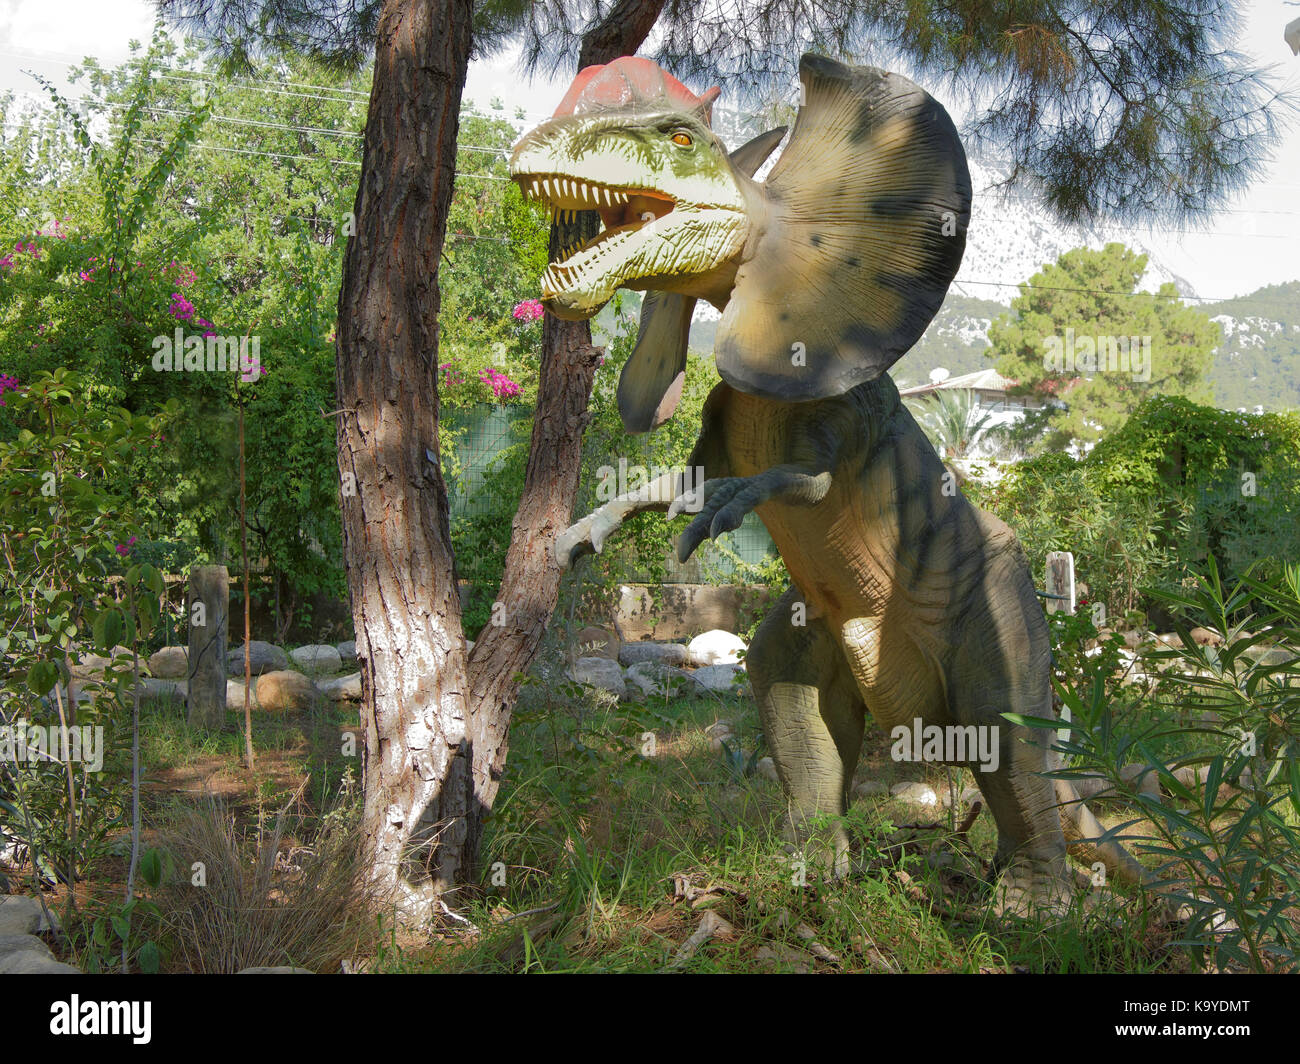 Kemer;Turkey- September 06; 2017: Dilophosaurus- Early Jurassic/ 200-190 million years ago. In the Dinopark - Stock Image